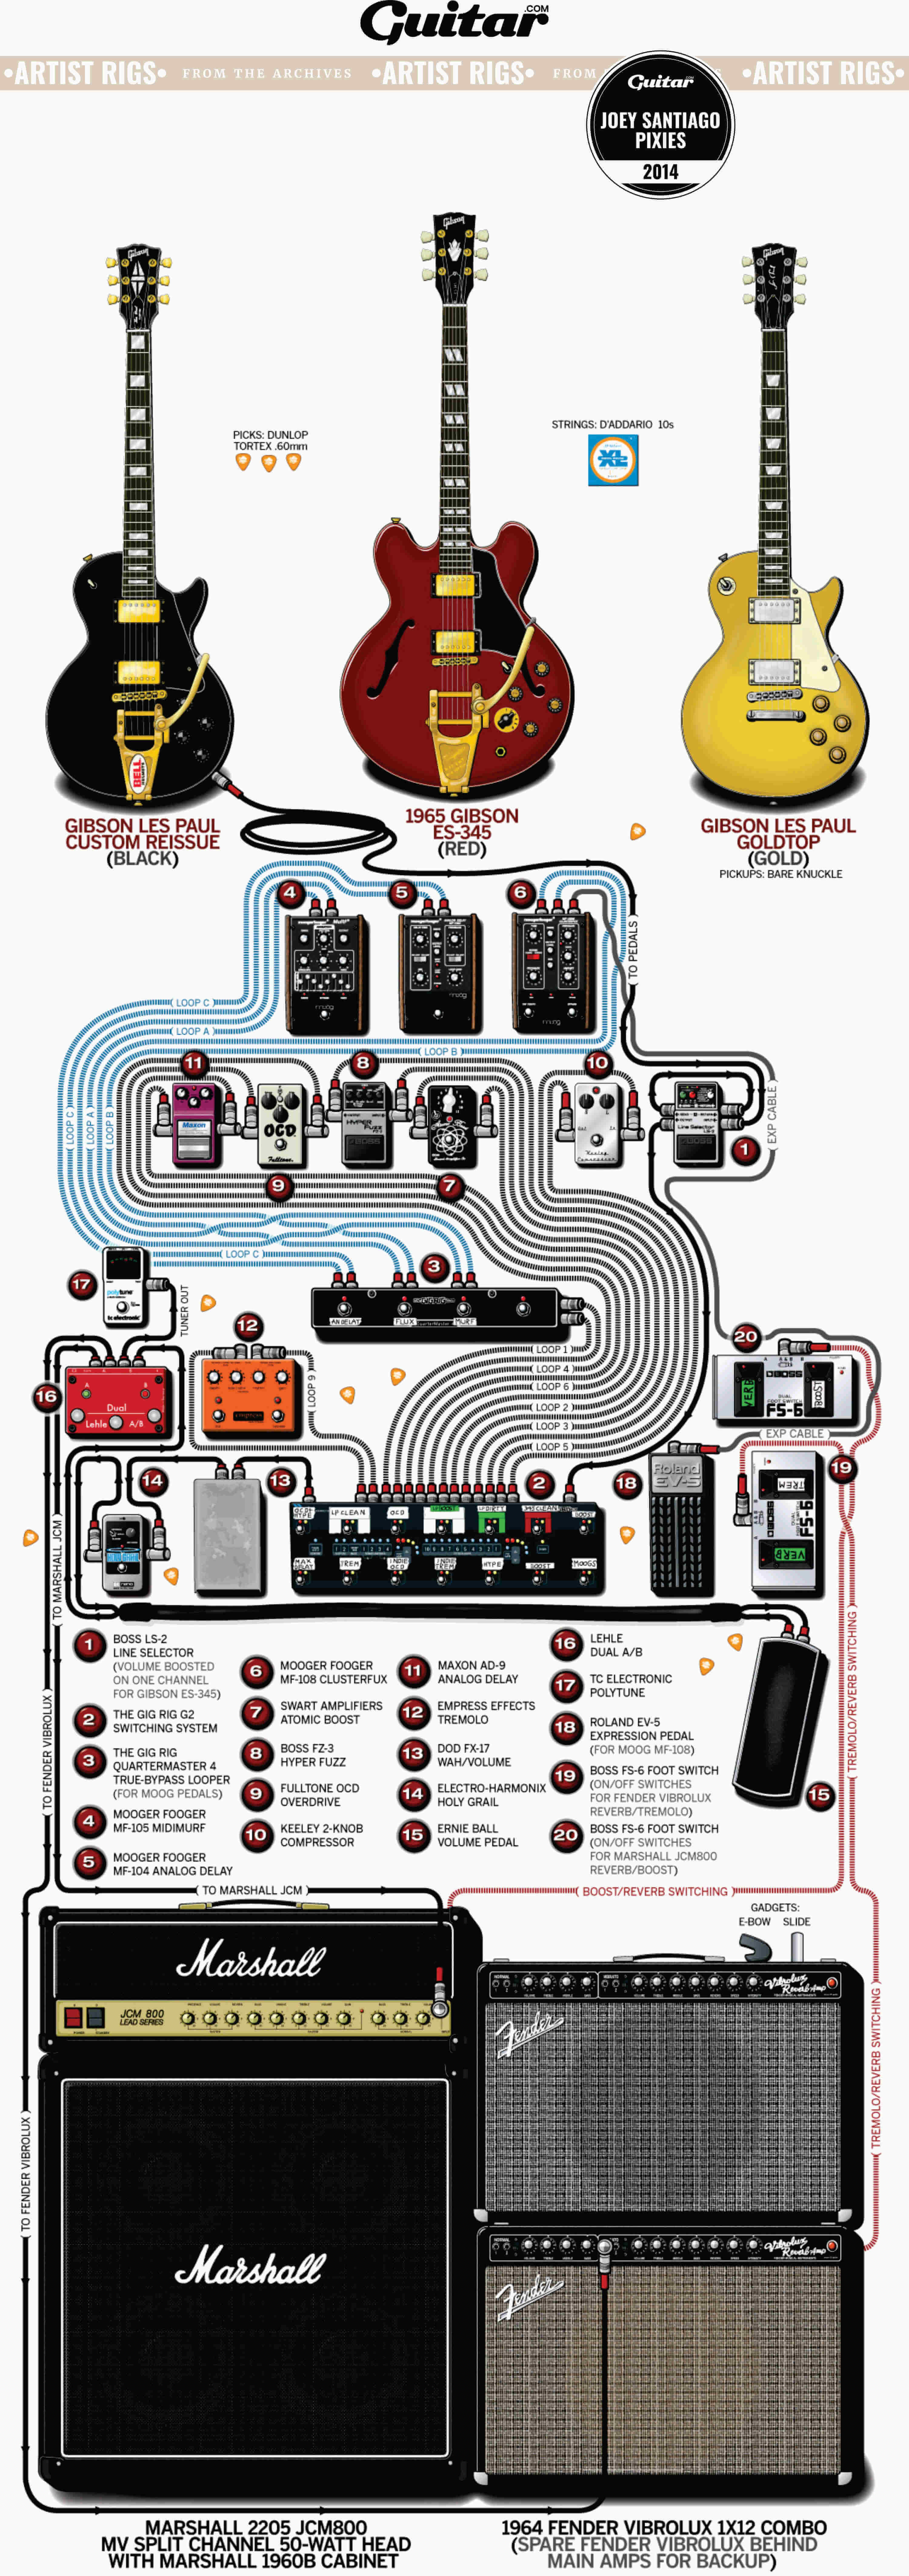 Rig Diagram: Joey Santiago, Pixies (2014)